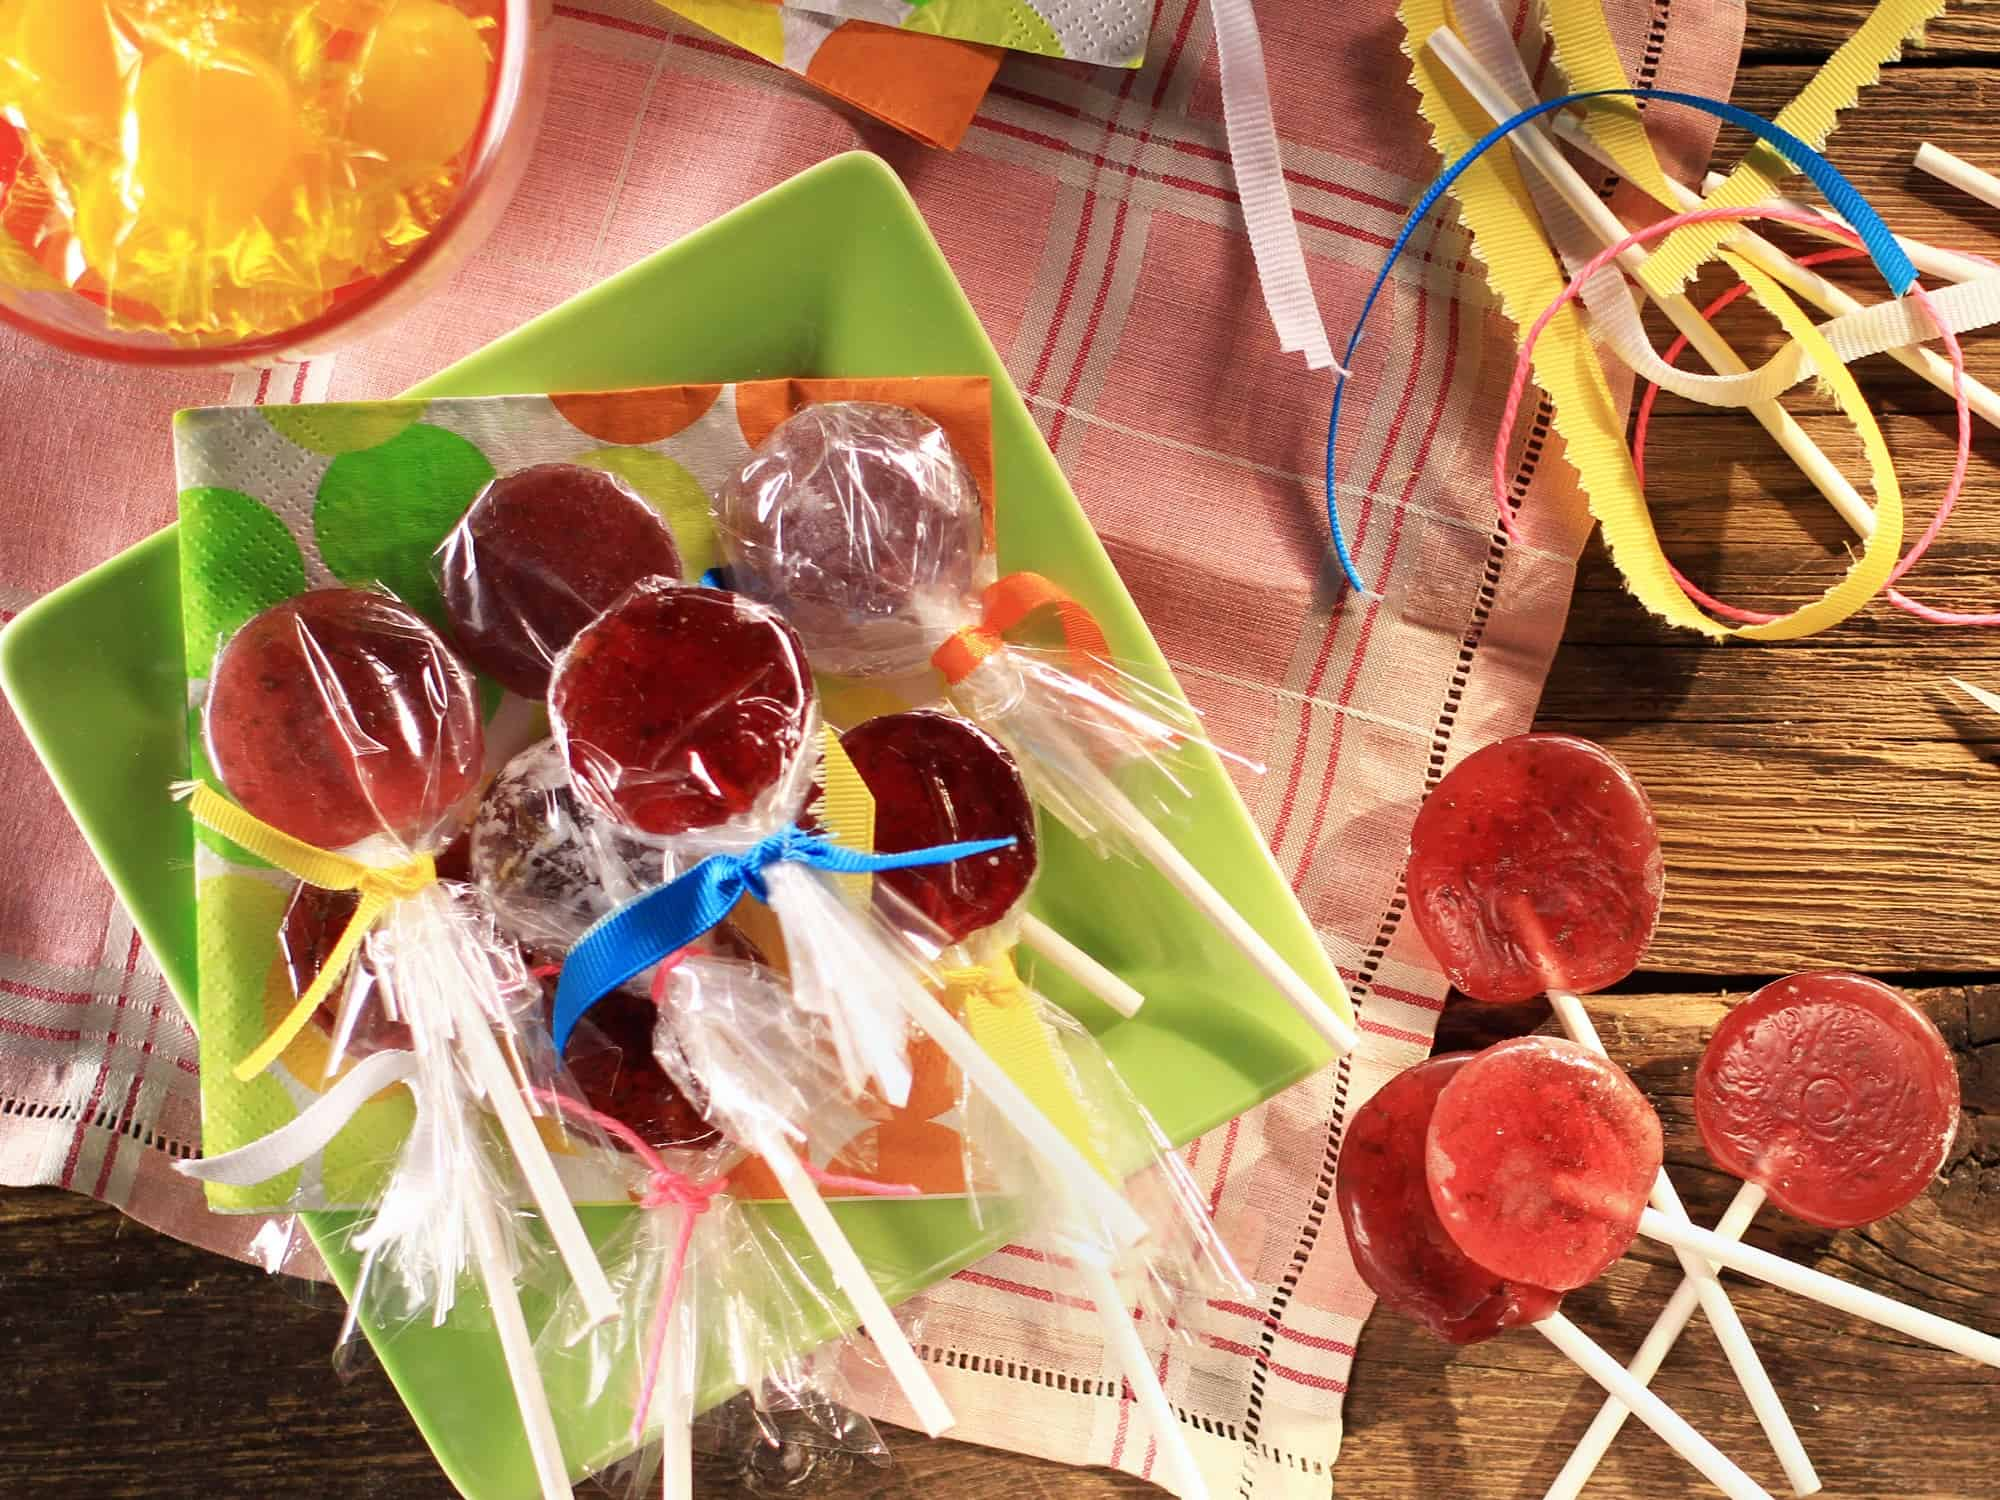 Pomegranate lime lollipops